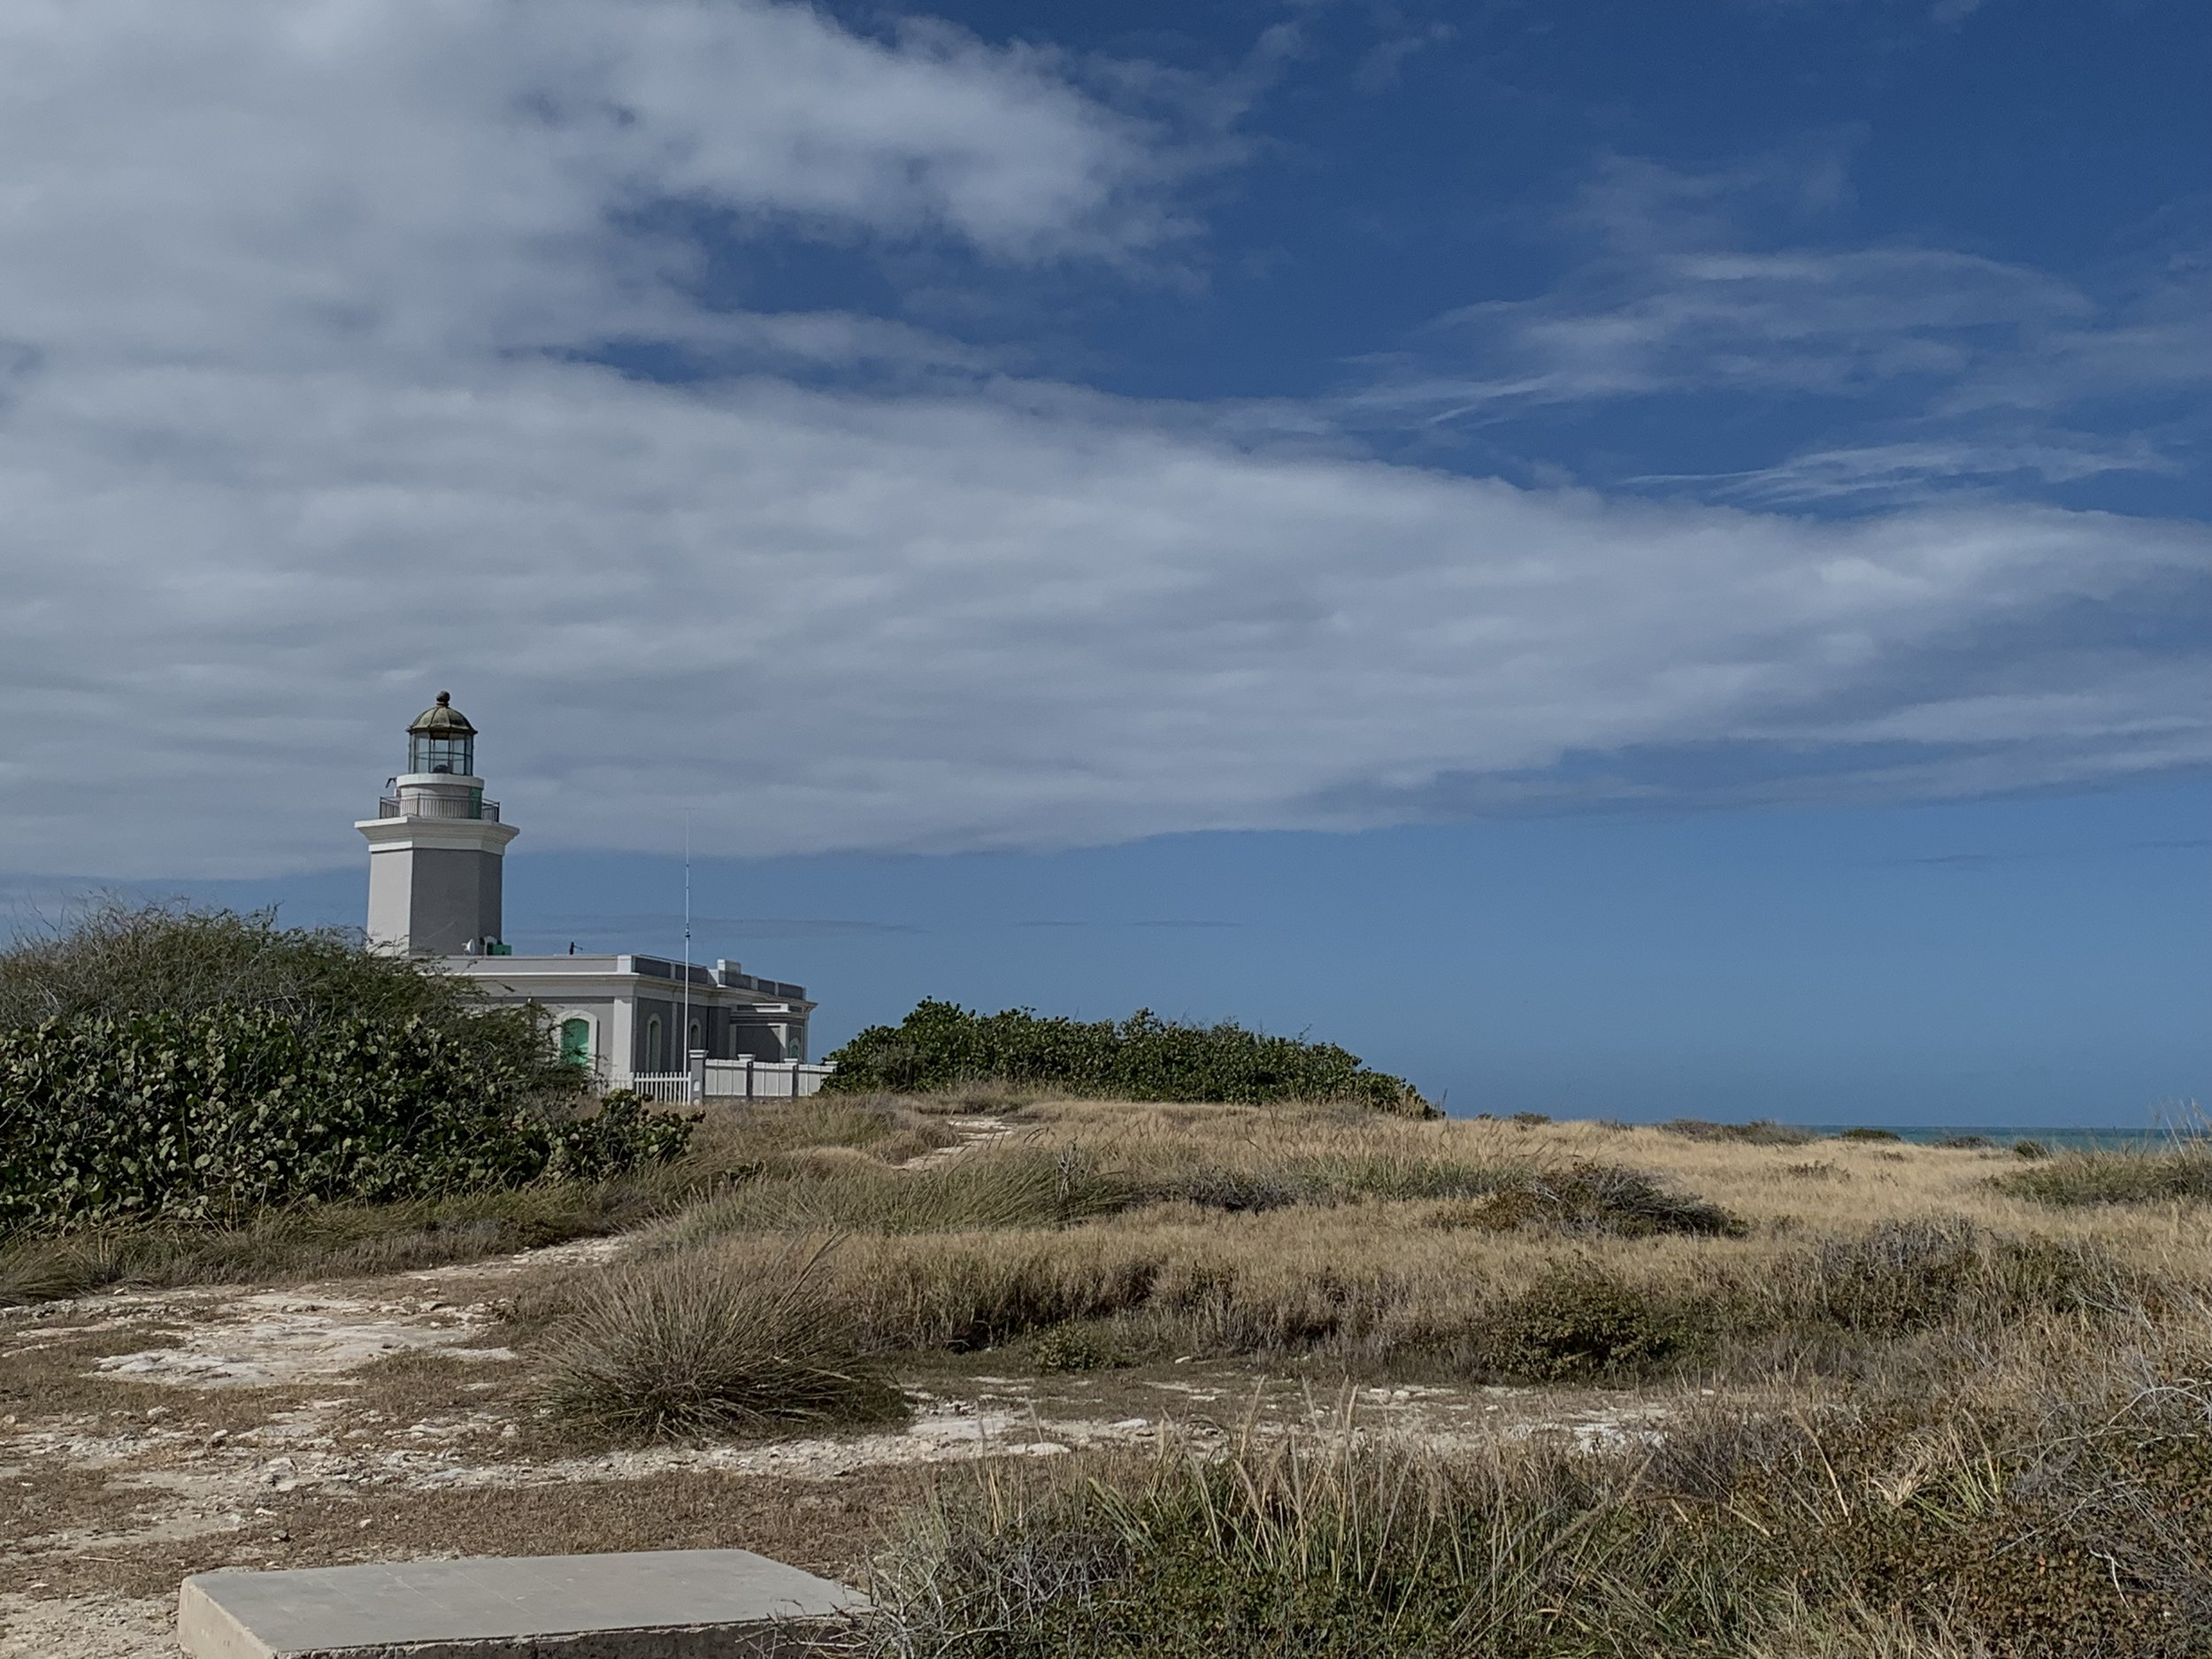 The Cabo Rojo lighthouse at Playa Sucia